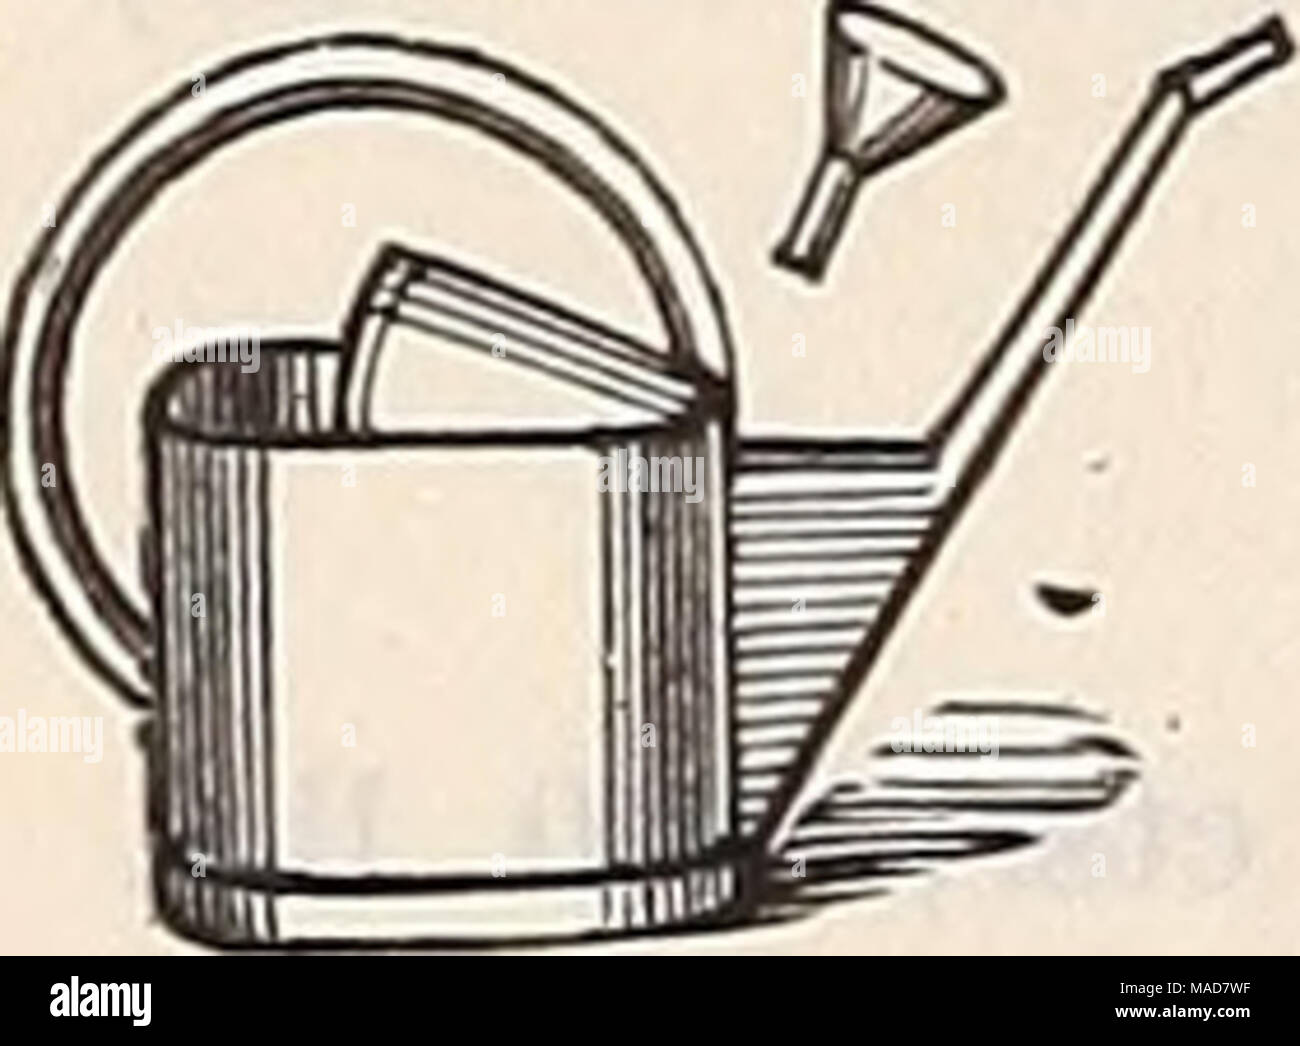 """. Dreer's quarterly wholesale price list : seeds plants bulbs tools fertilizers sundries &c . Round. $1 15 1 45 1 80 2 25 2 70 Galvanized Water Pots. A substantial water pot and one we can recommend for constant use. Wotherspoon's patent. 4 quart $1 50 6 """" 1 75 8 """" 2 00 10 """" 2 25 12 """" 2 50 16 """" 3 00 - Stock Image"""